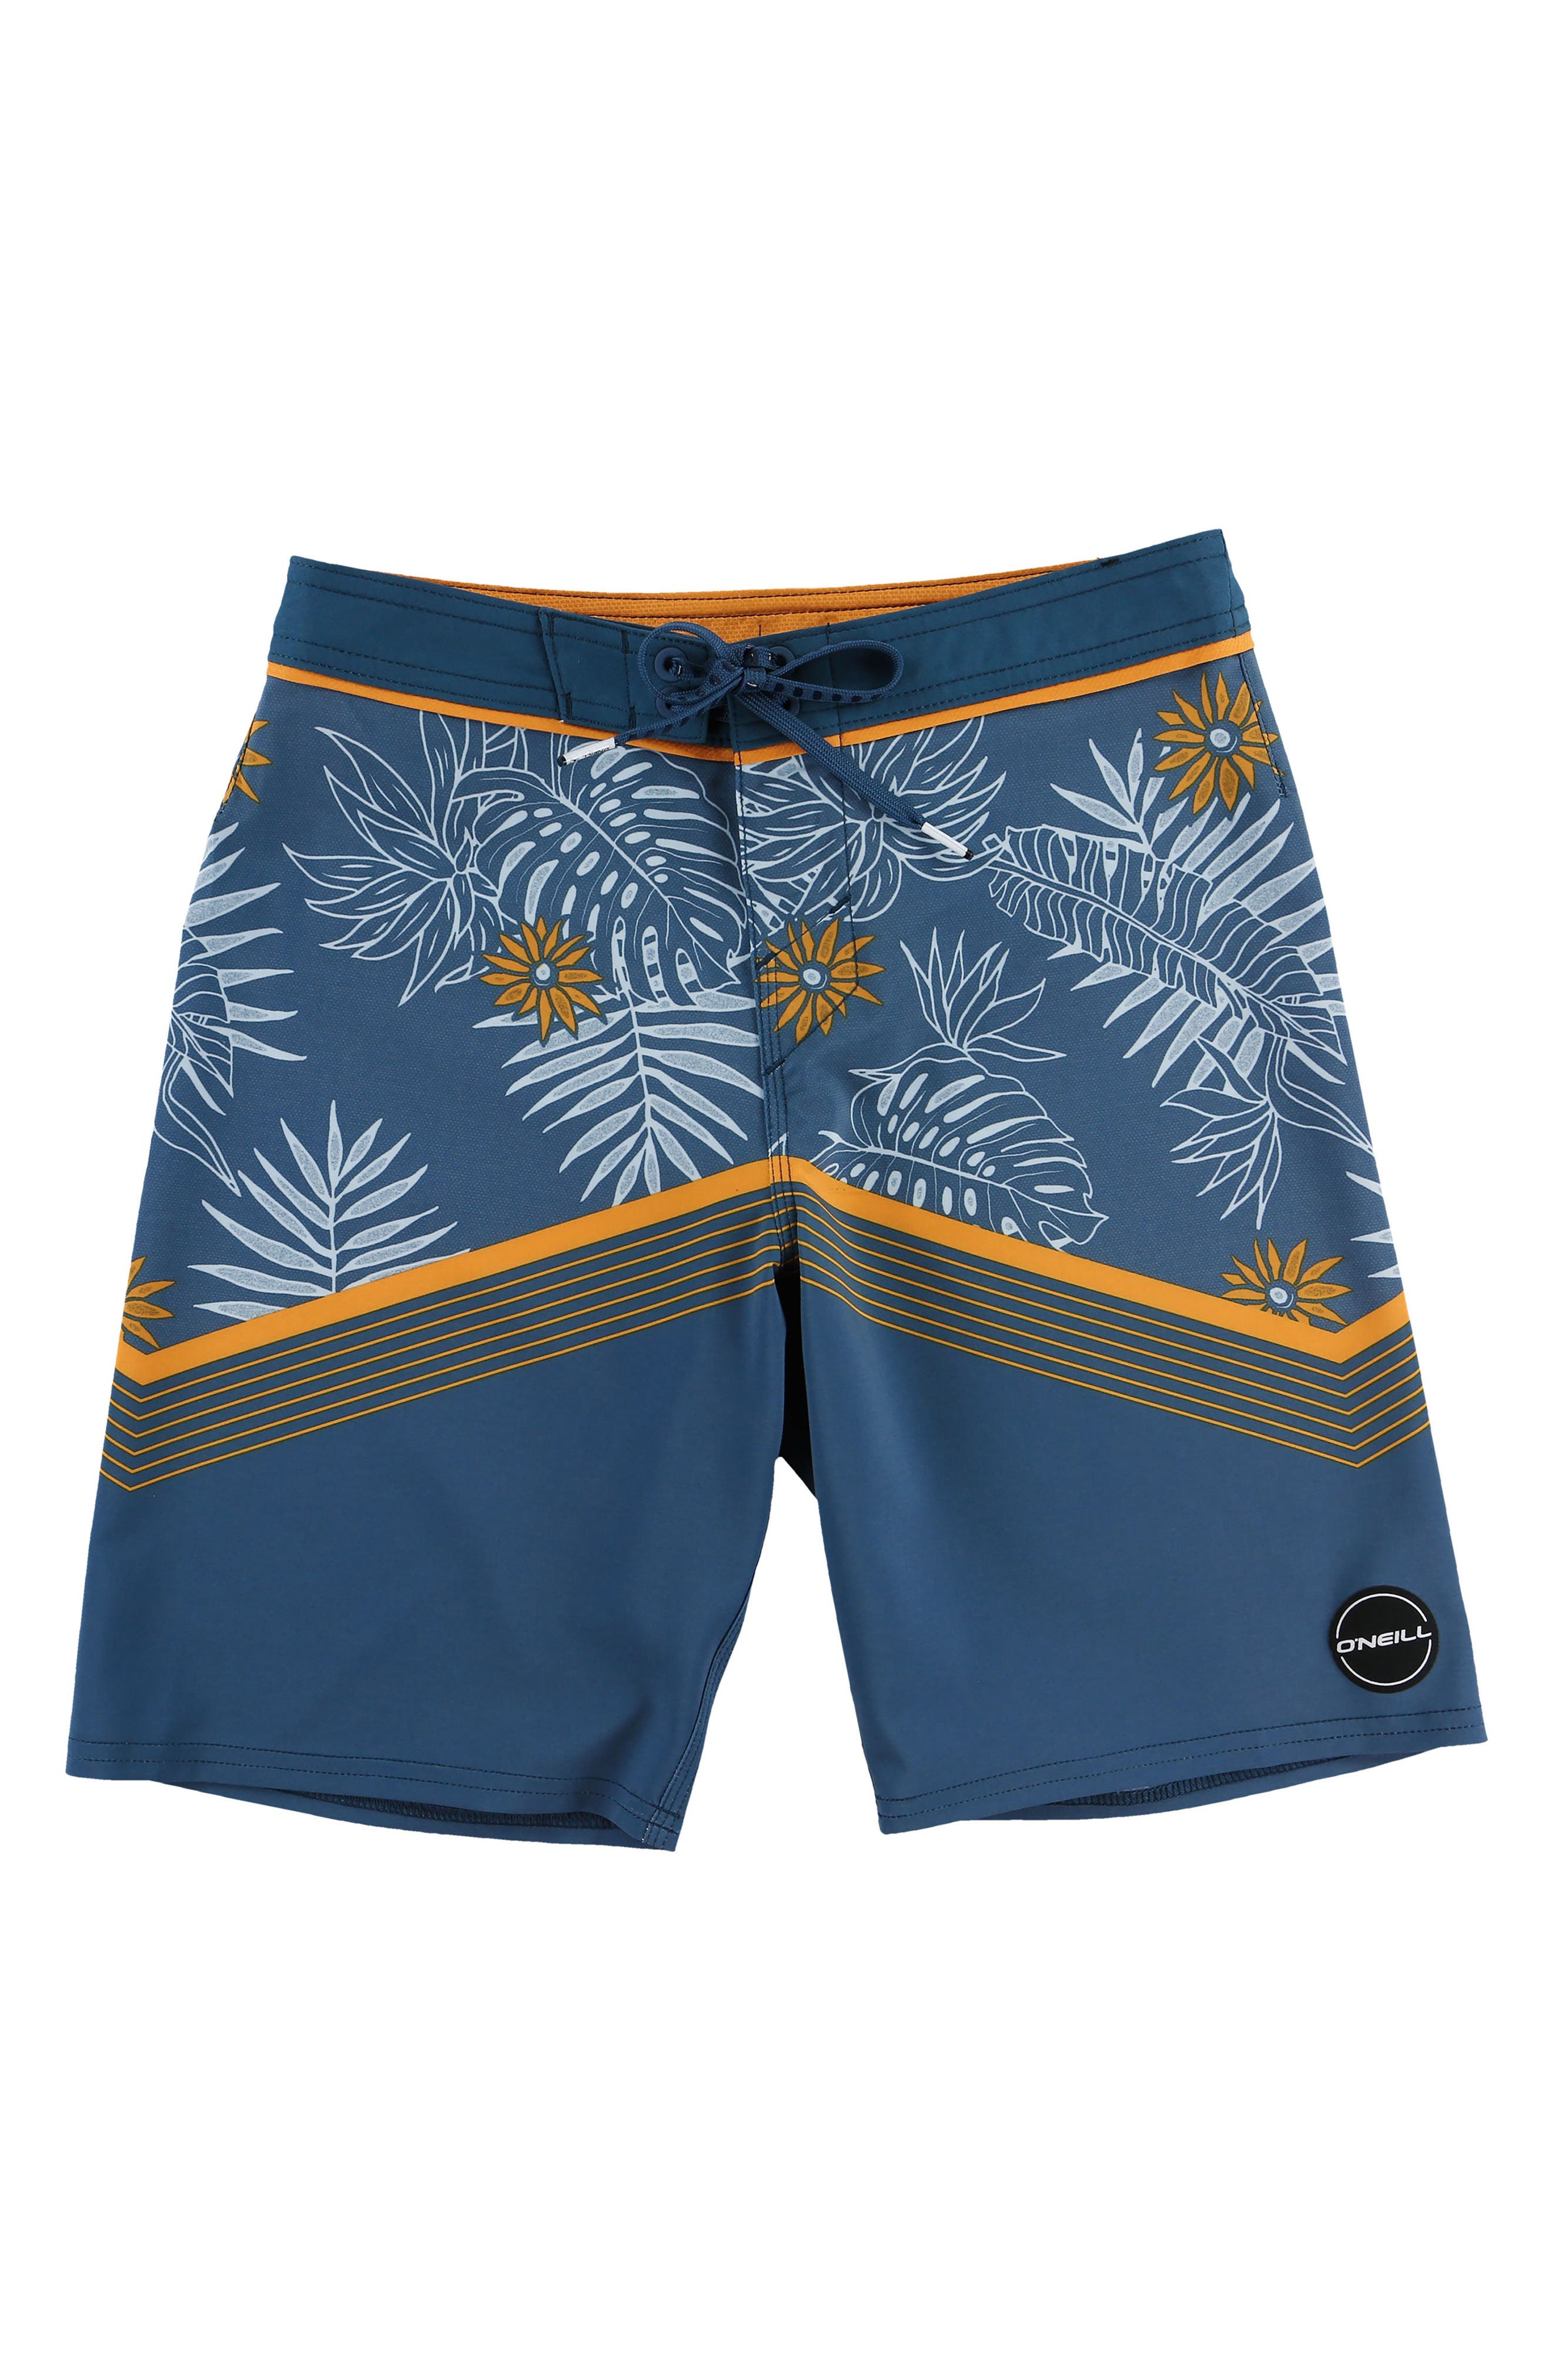 Alternate Image 1 Selected - O'Neill Hyperfreak Tradewinds Board Shorts (Big Boys)